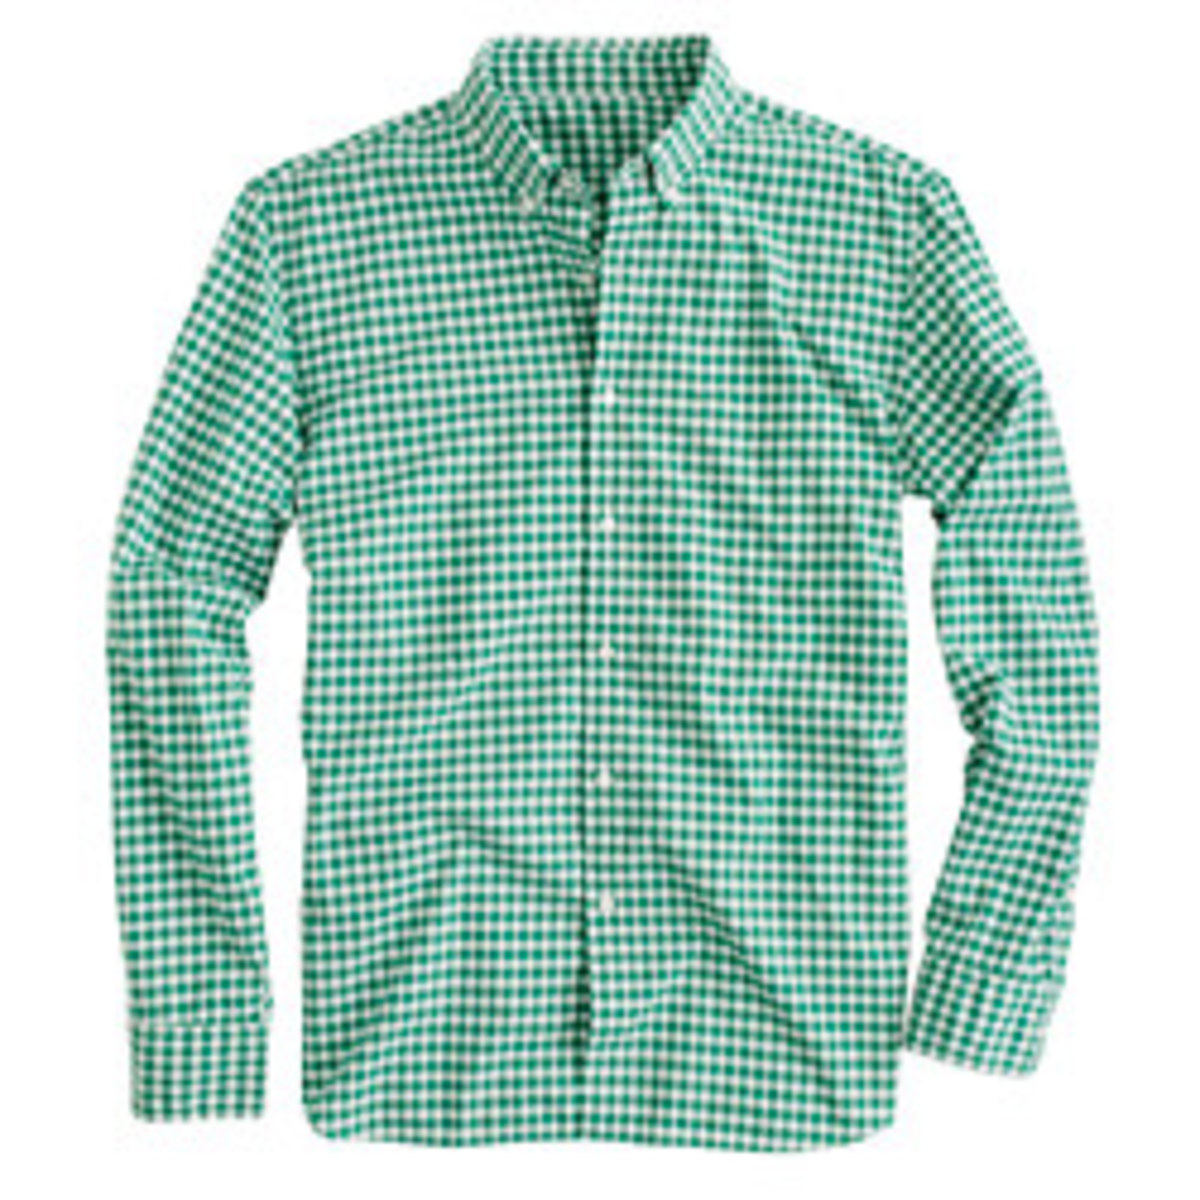 J.Crew. Secret Wash shirt in green gingham, $64.50